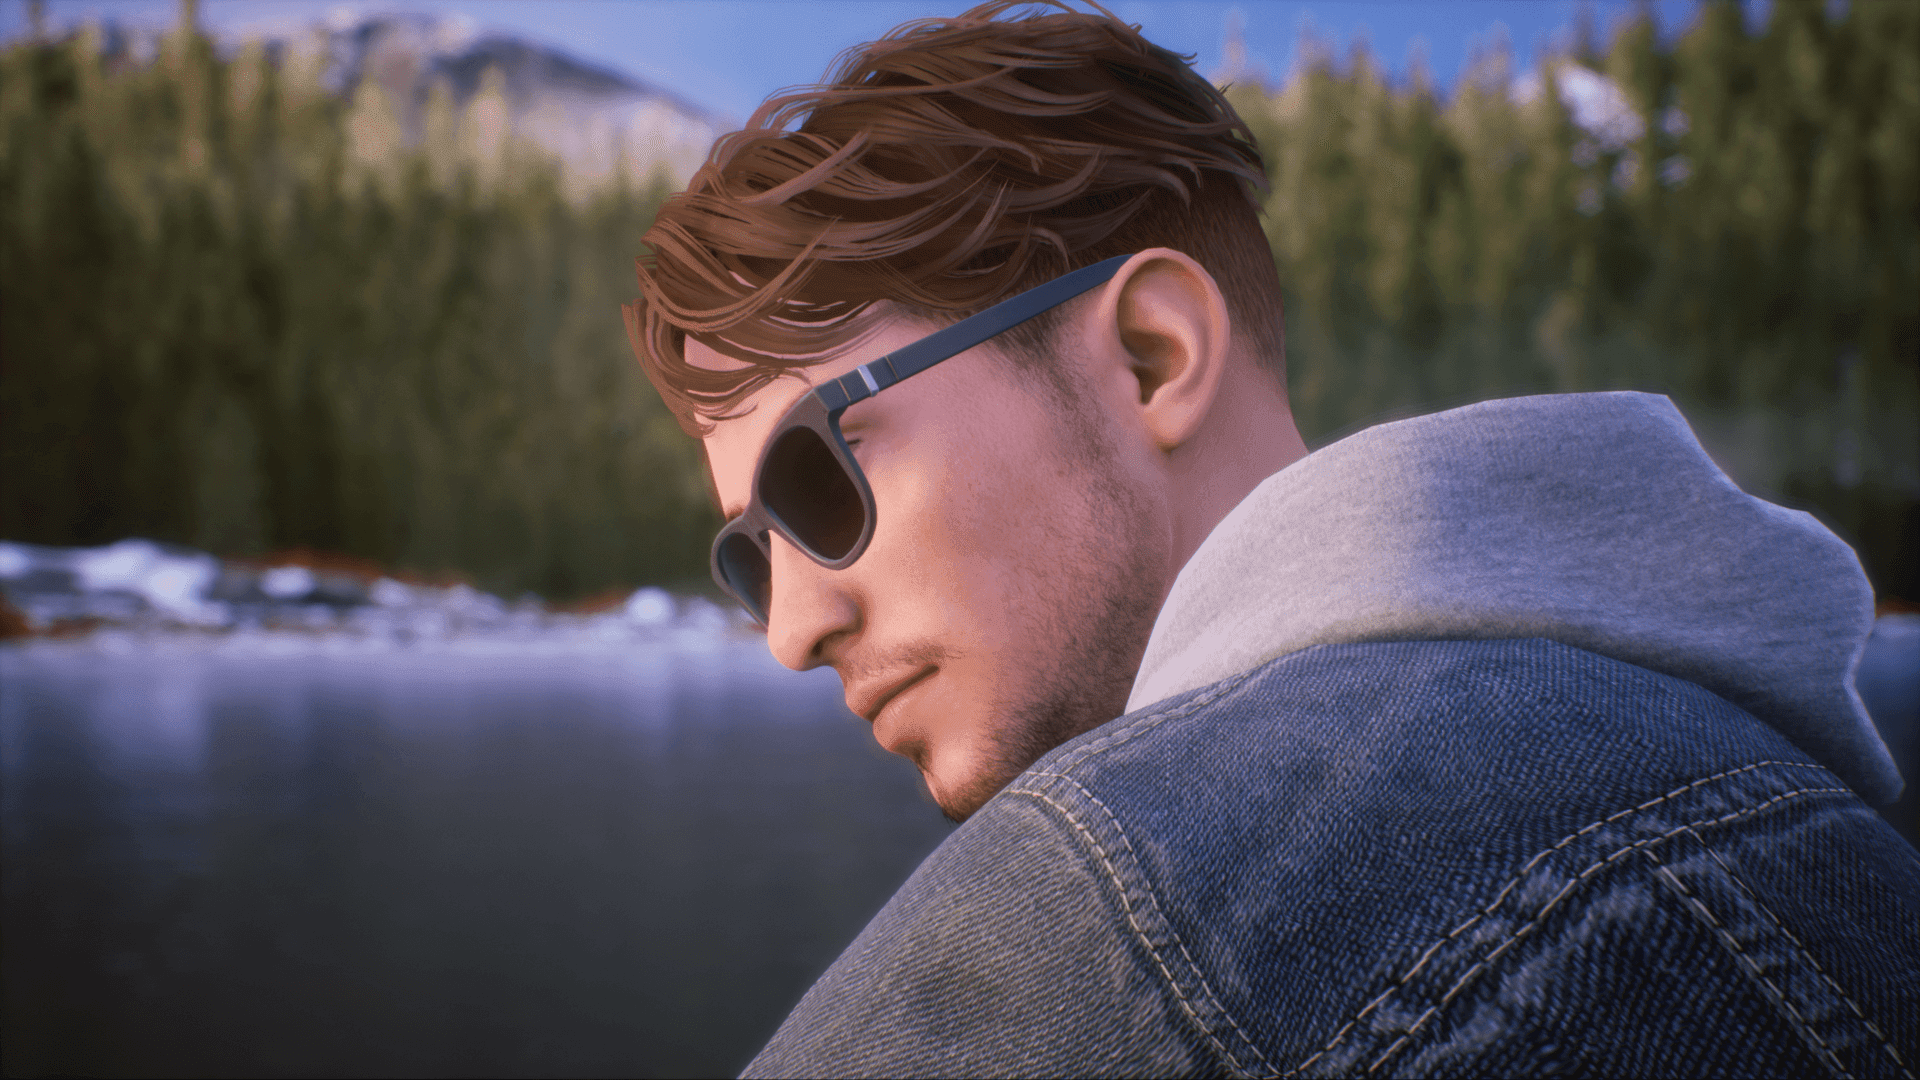 """Tyler, a transgender guy, is one of two playable characters in the forthcoming Xbox game """"Tell Me Why."""" Image: Microsoft/DONTNOD Entertainment"""